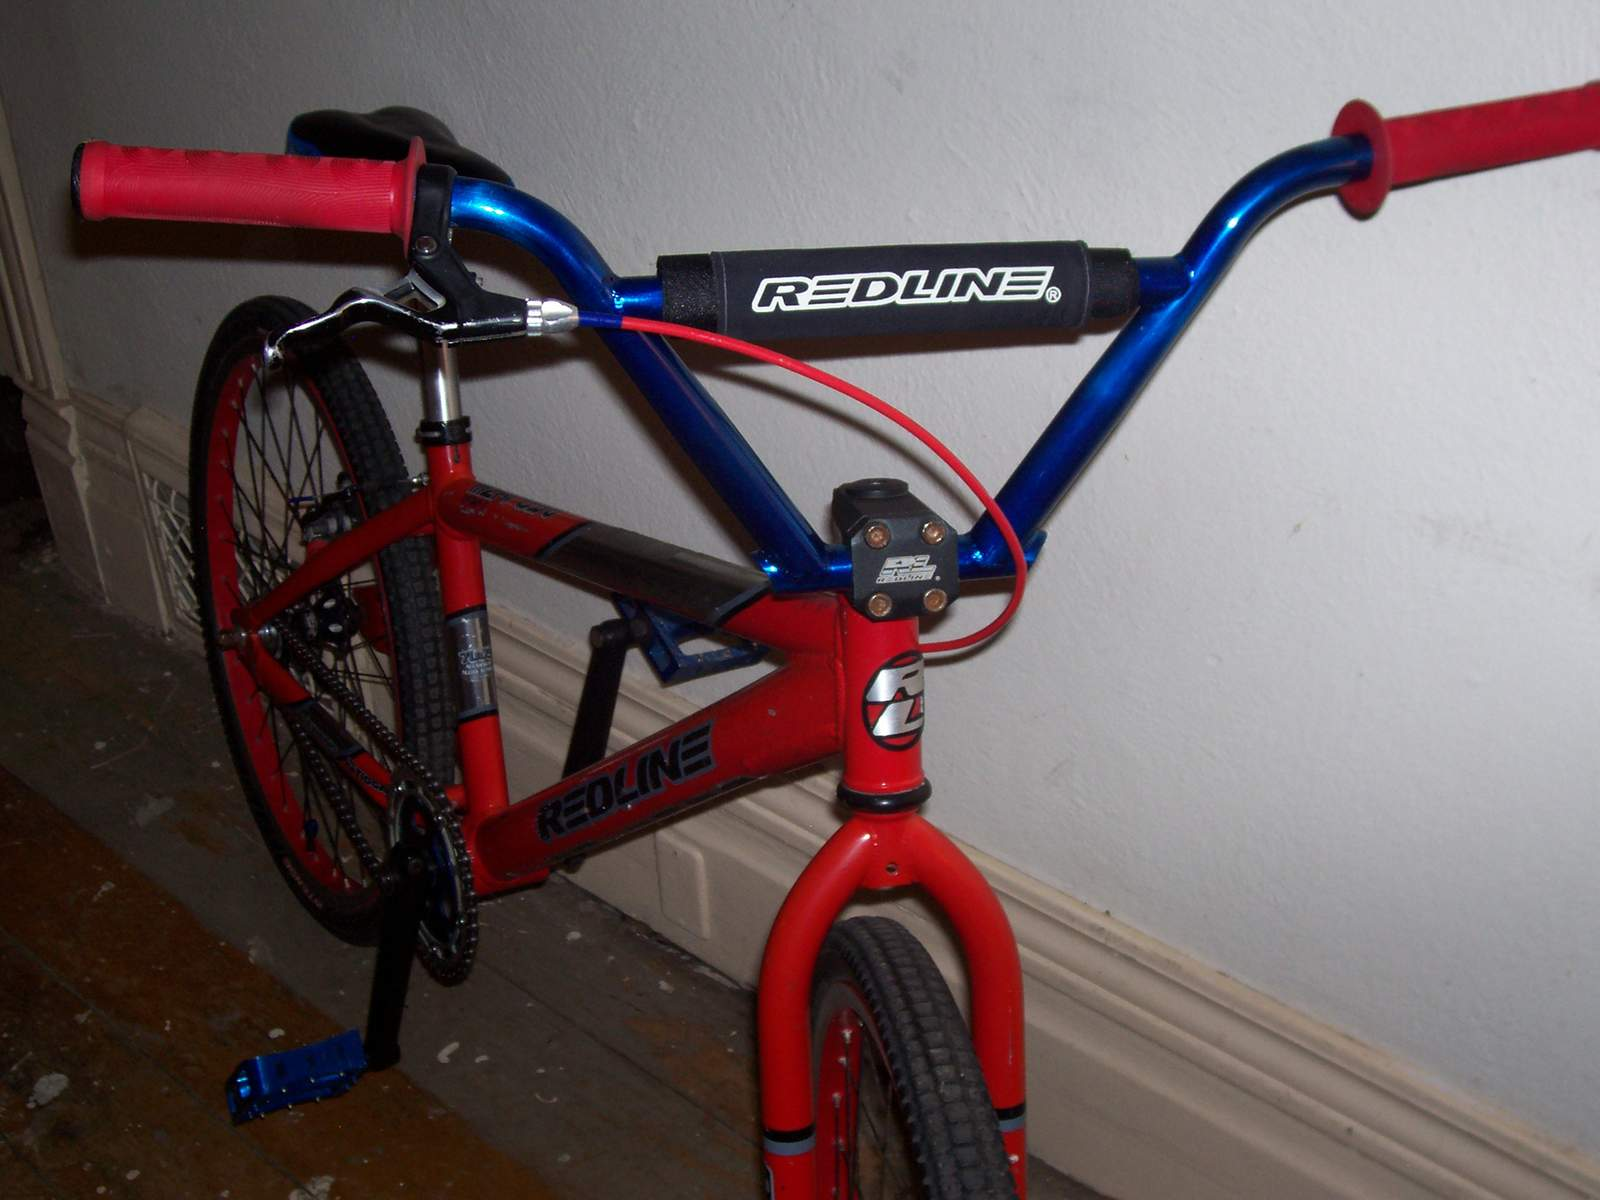 http://uploads.bmxmuseum.com/user-images/61851/100_67495825850791.jpg